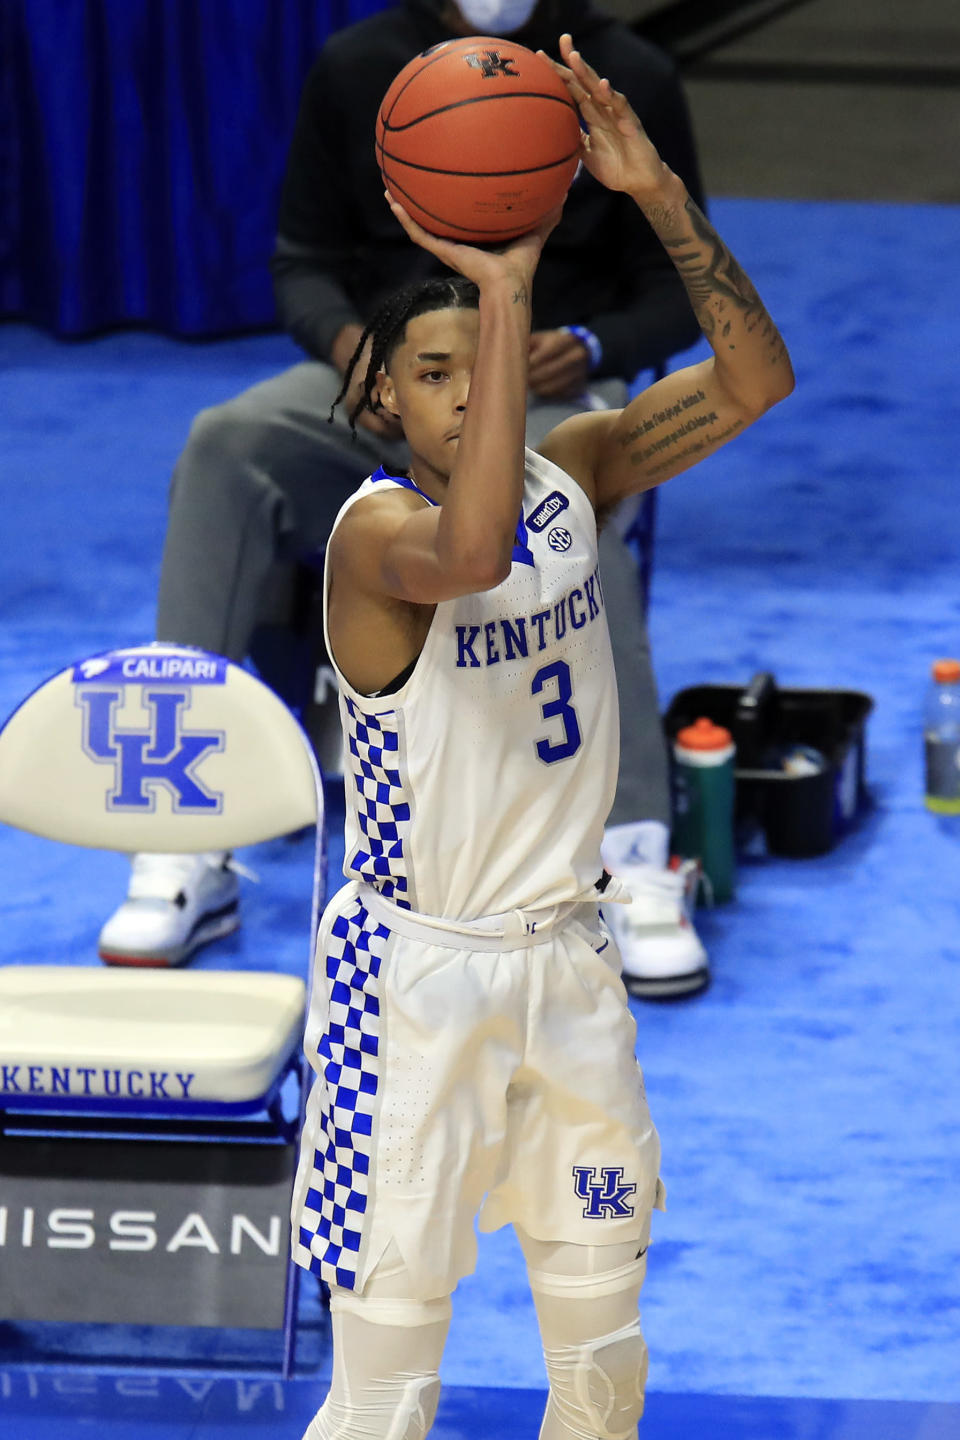 Kentucky's B.J. Boston shoots during the second half of the team's NCAA college basketball game against Morehead State in Lexington, Ky., Wednesday, Nov. 25, 2020. Kentucky won 81-45. (AP Photo/James Crisp)